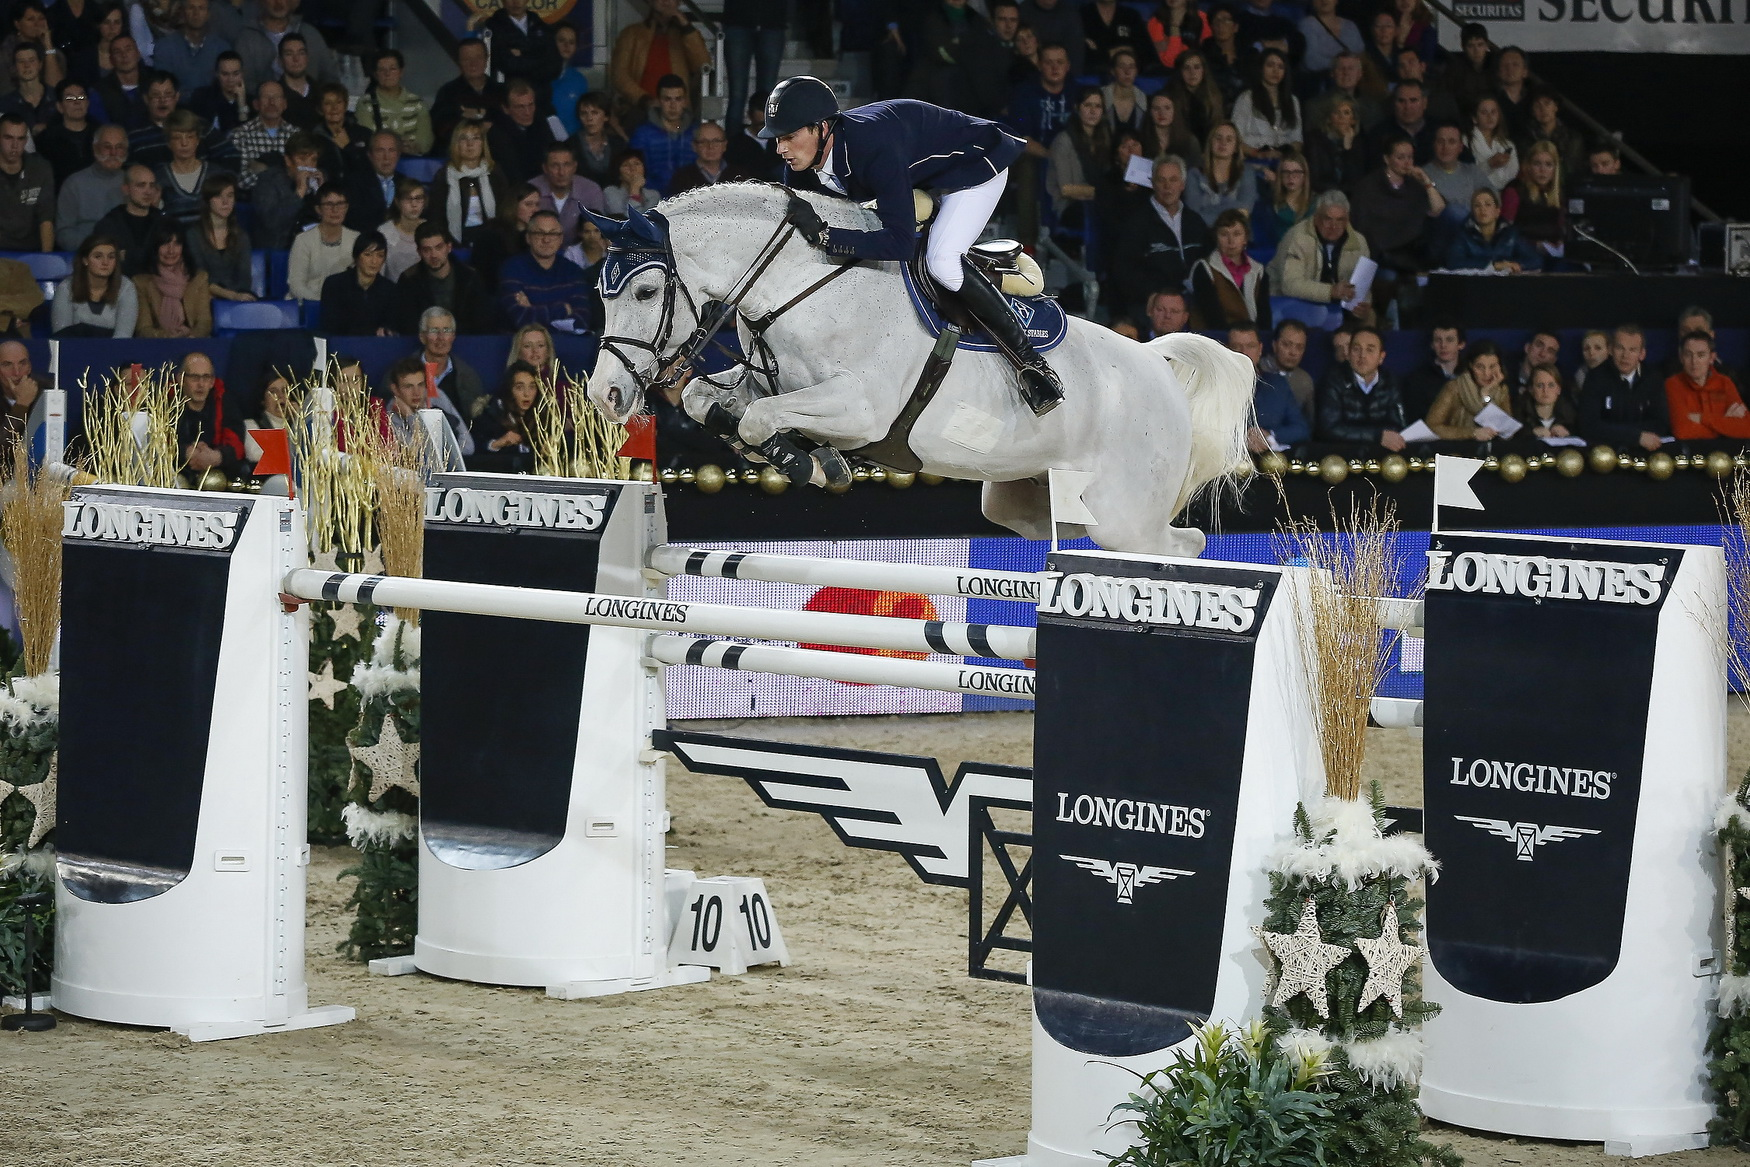 Germany's Daniel Deusser jumps to the top of the Longines rankings © FEI/Dirk Caremans